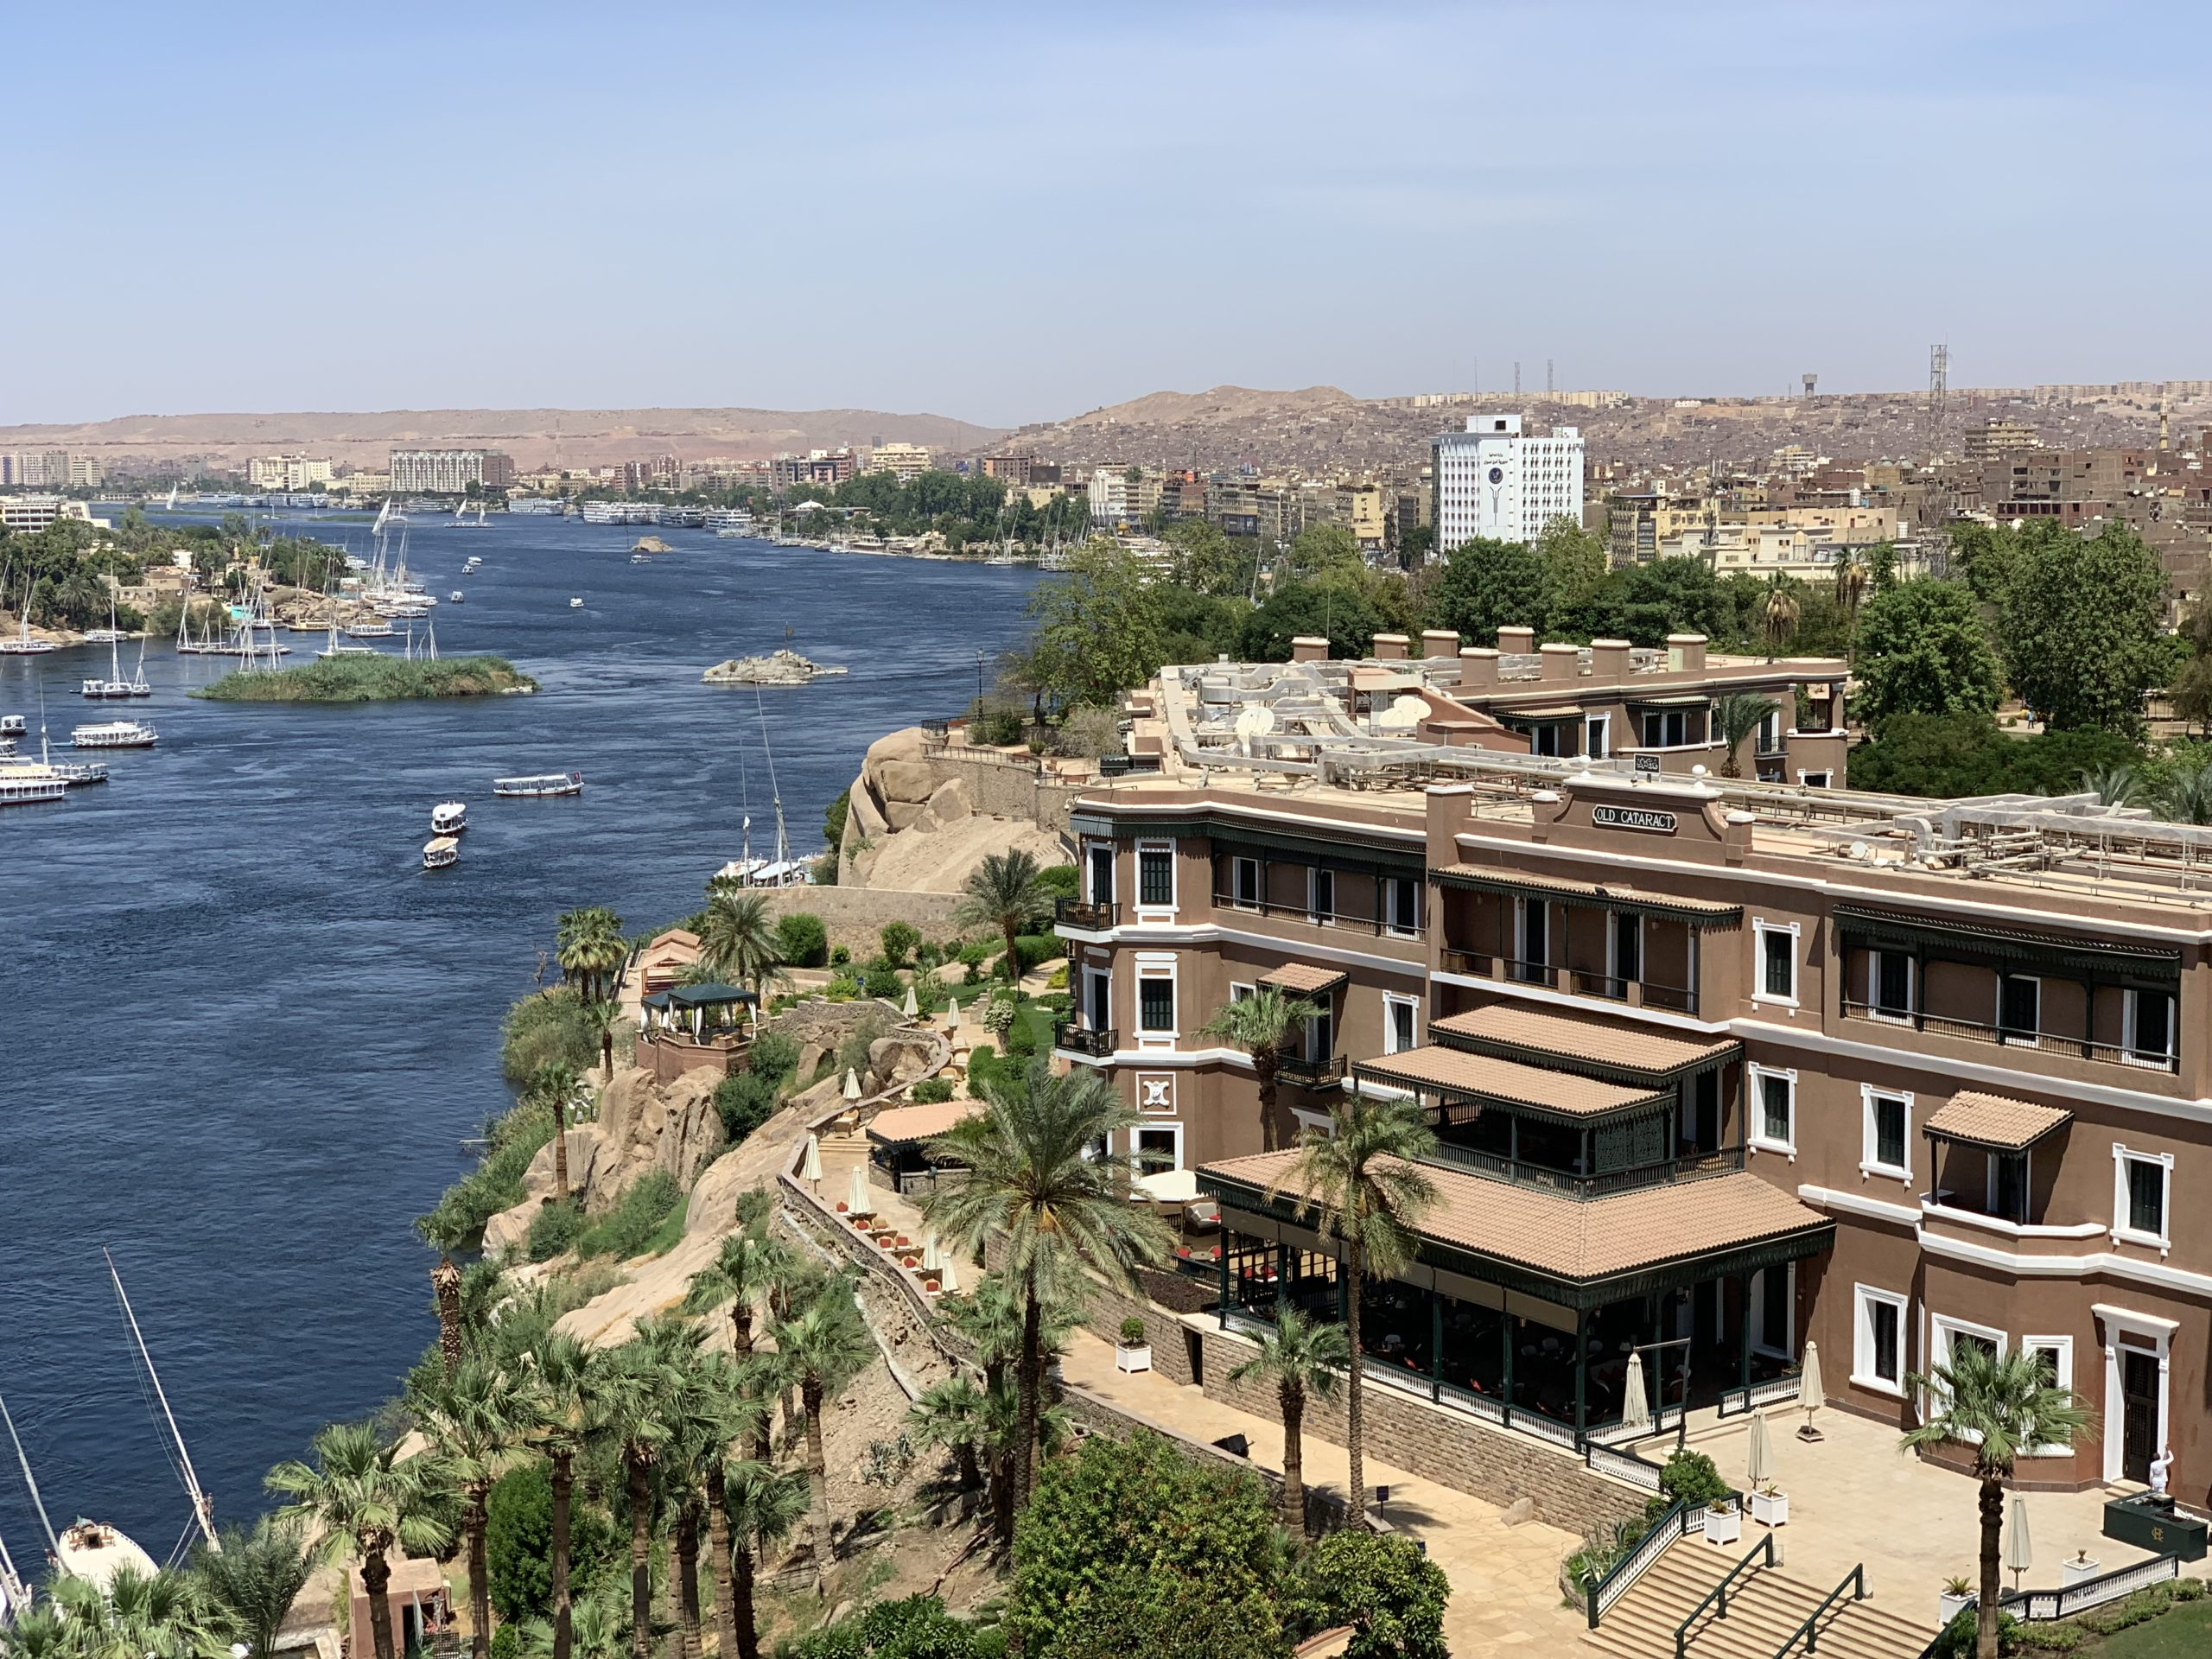 Aswan city and river view with Old Cataract Hotel